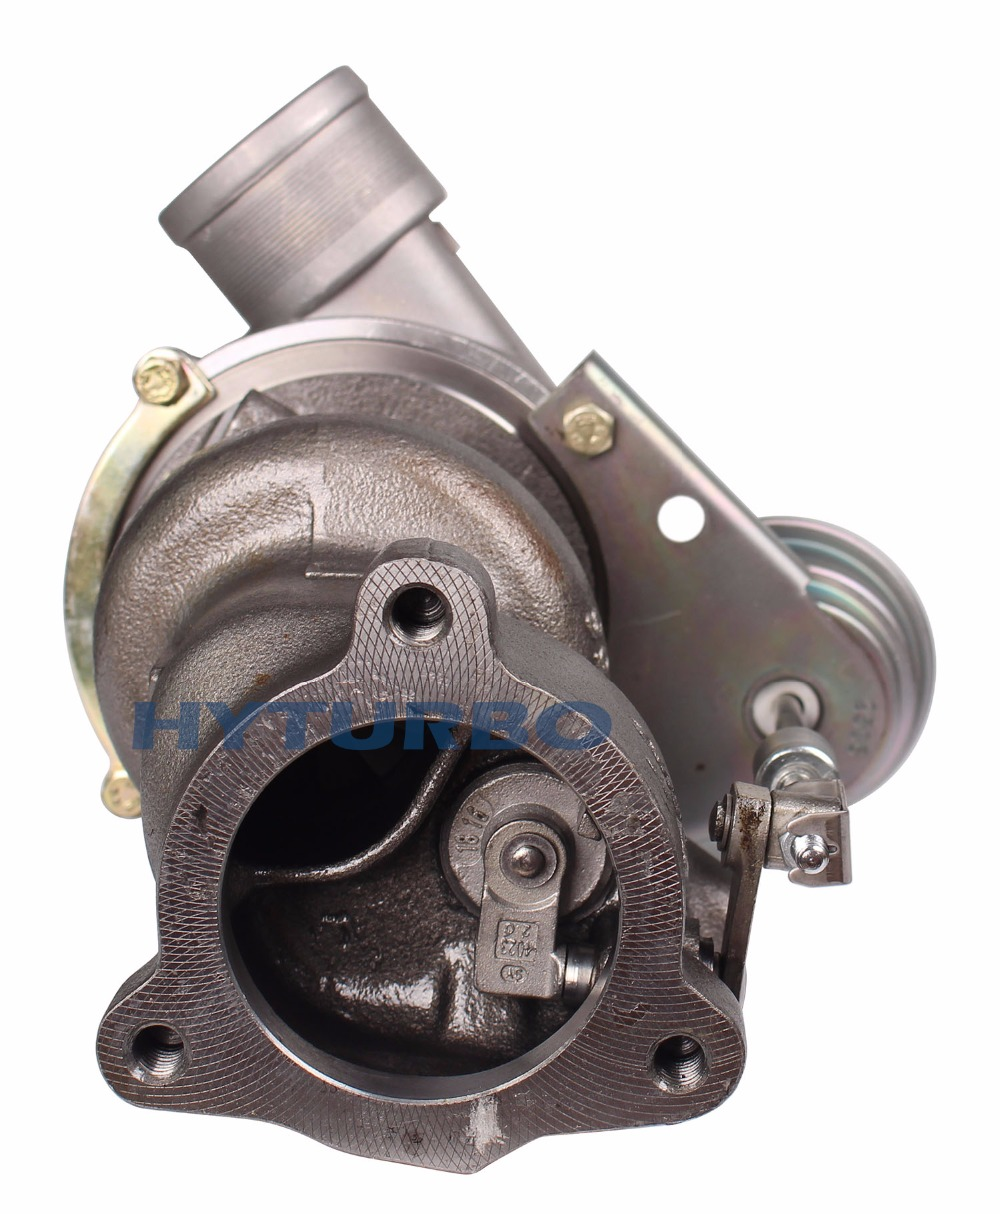 turbocharger Fit for Audi A4 Quattro 1.8T AEB/ANB/APU/AWT/AVJ k03 53039880029 53039880025  Turbocharger 058145703N